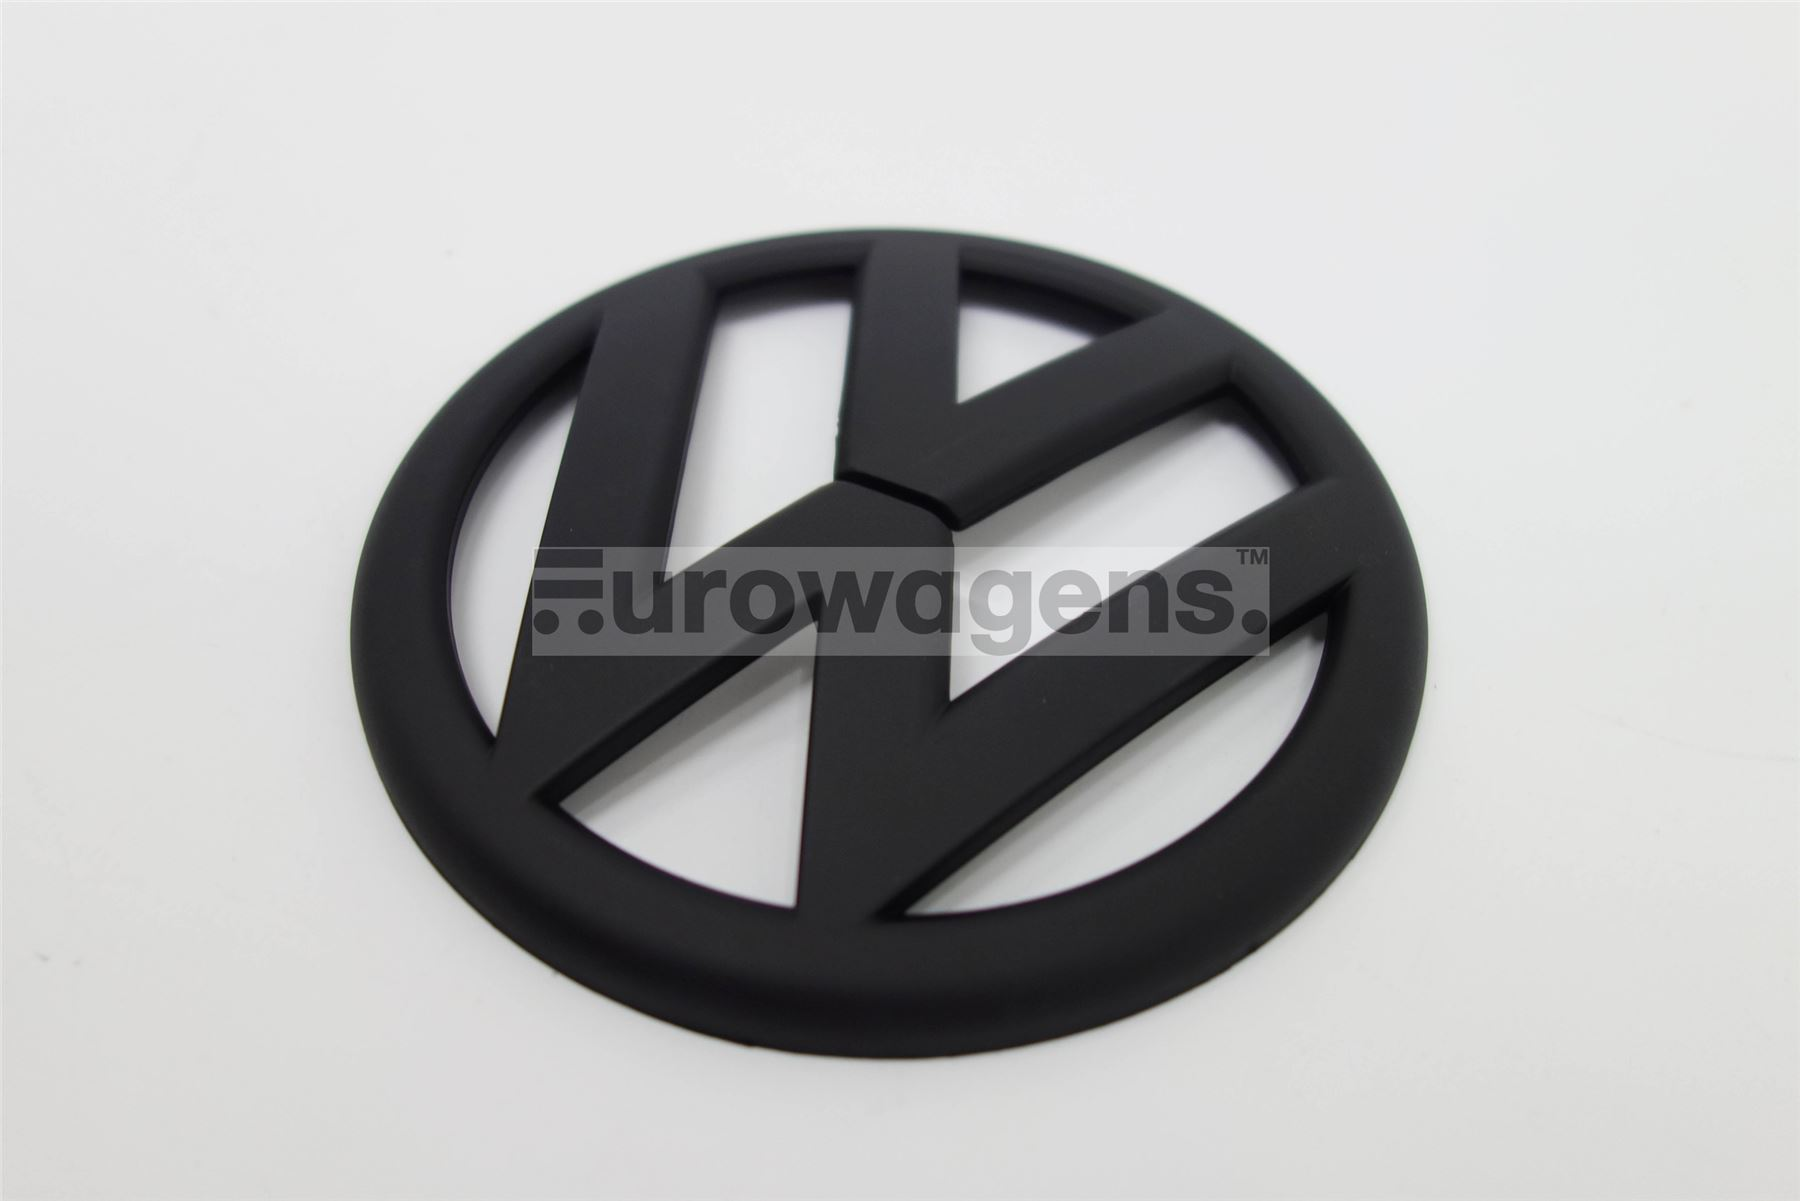 heckklappe emblem schwarz matt vw golf 6 gti ebay. Black Bedroom Furniture Sets. Home Design Ideas